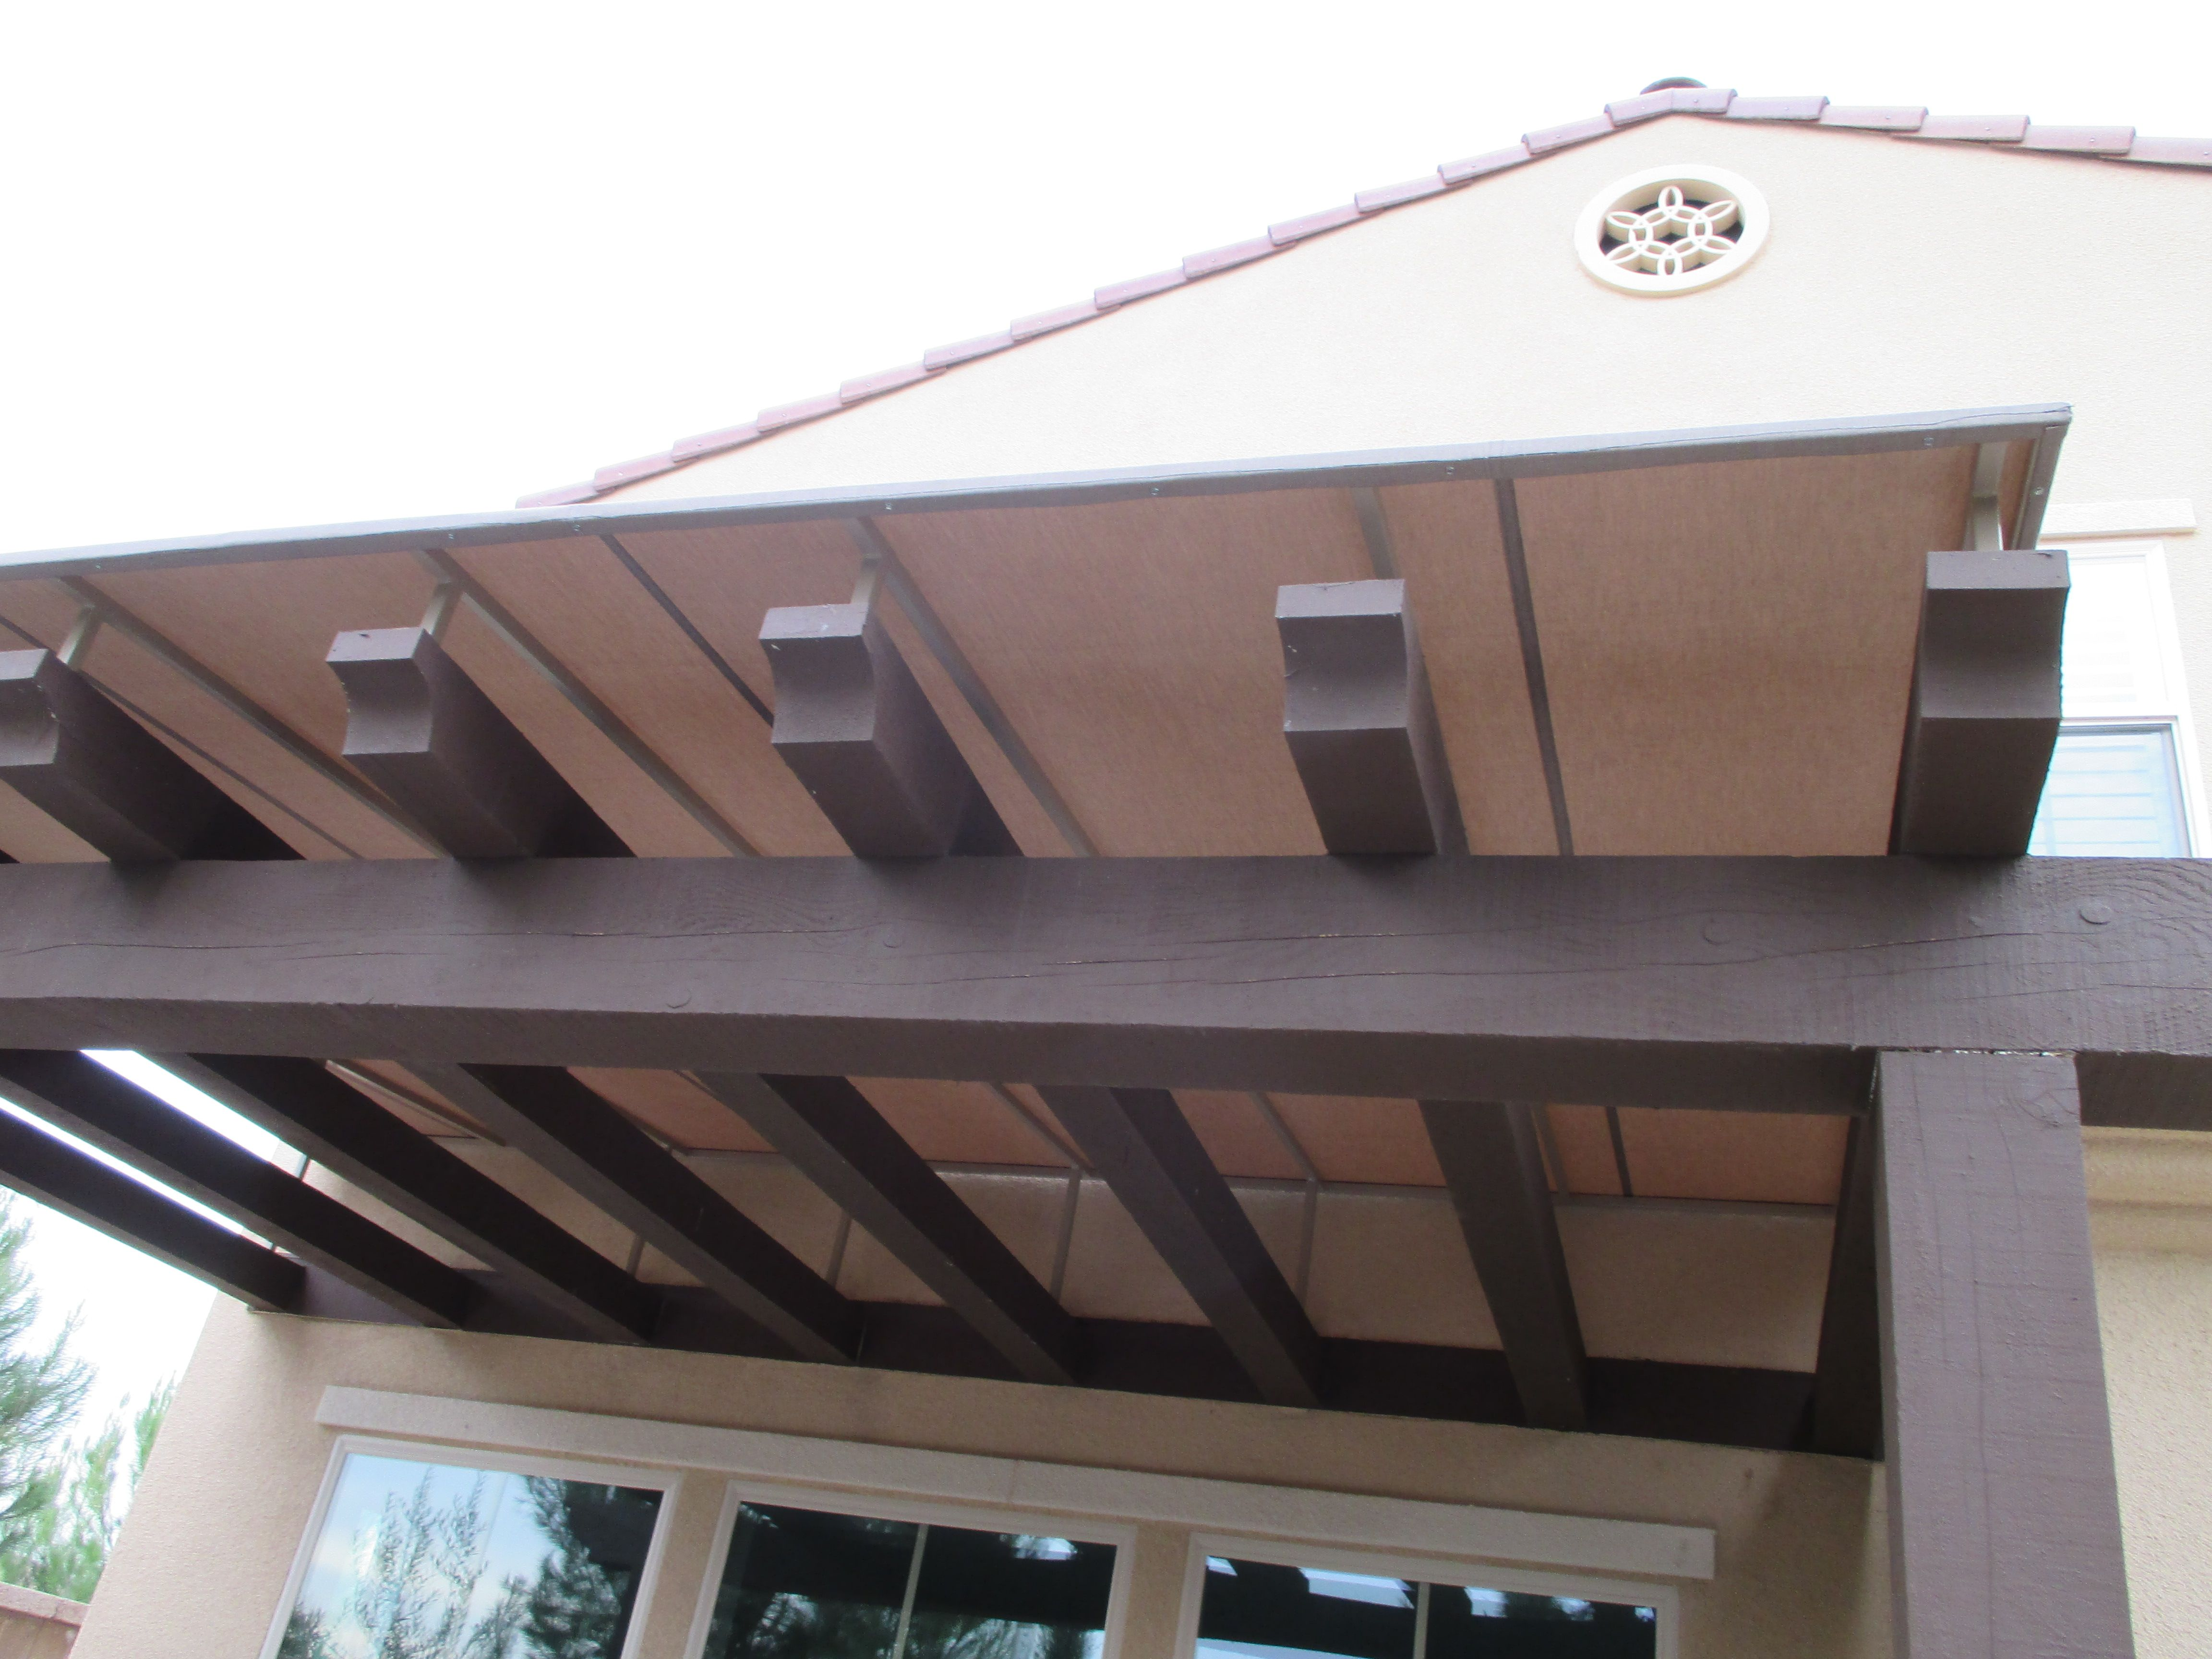 Stonegate Community In Irvine California Just Received Another Awning Trellis Cover Mendocino Sub Community Is Lookin Classic House Trellis Home Improvement